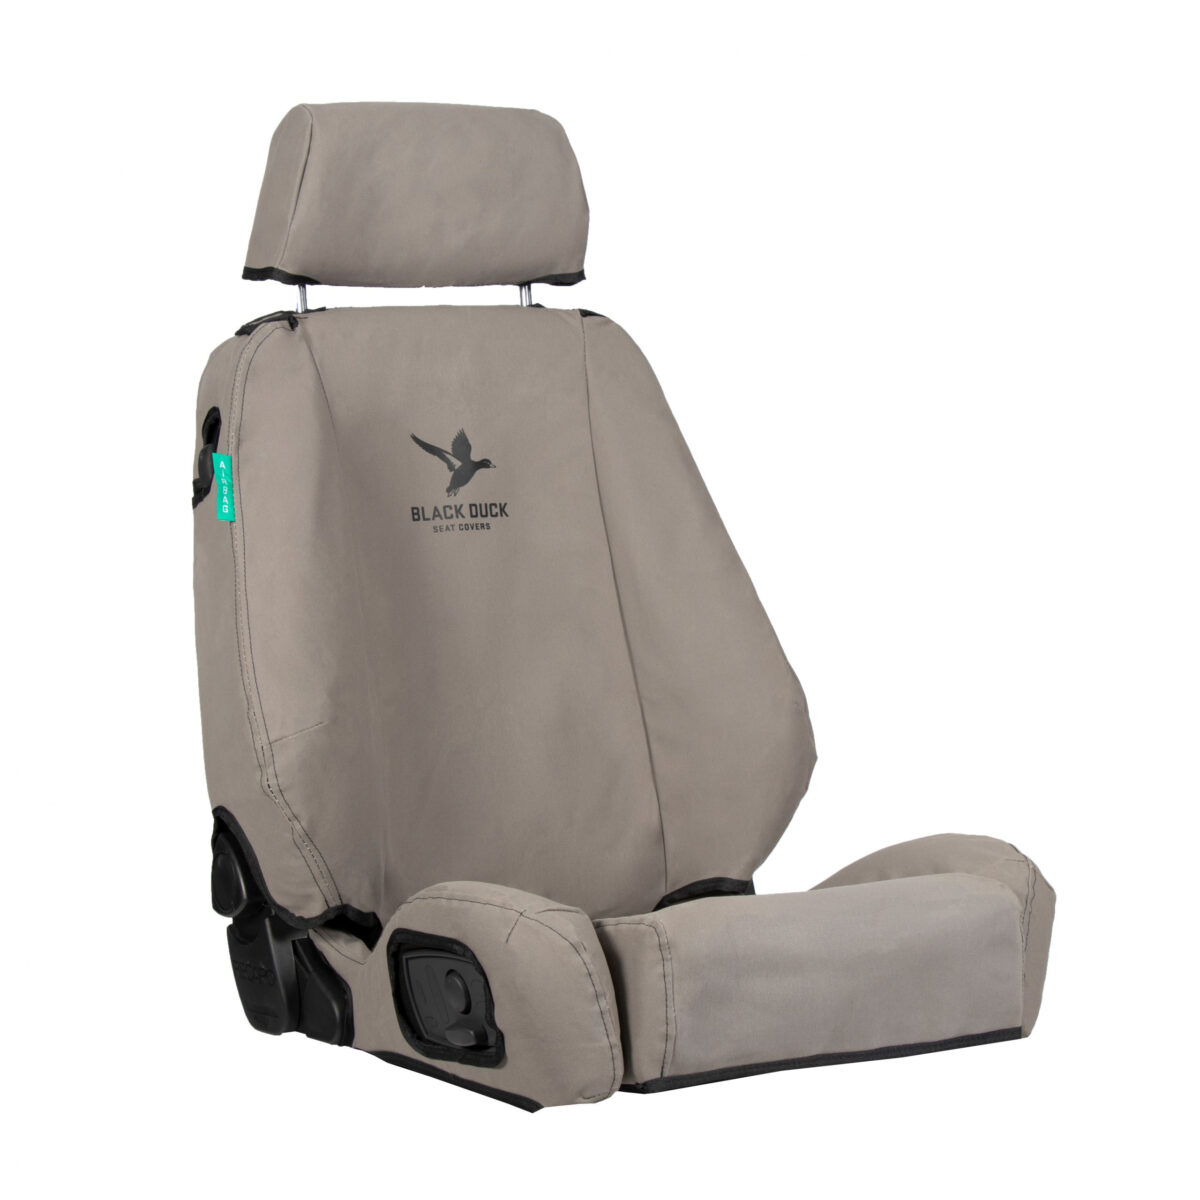 Black Duck Seat Cover Grey